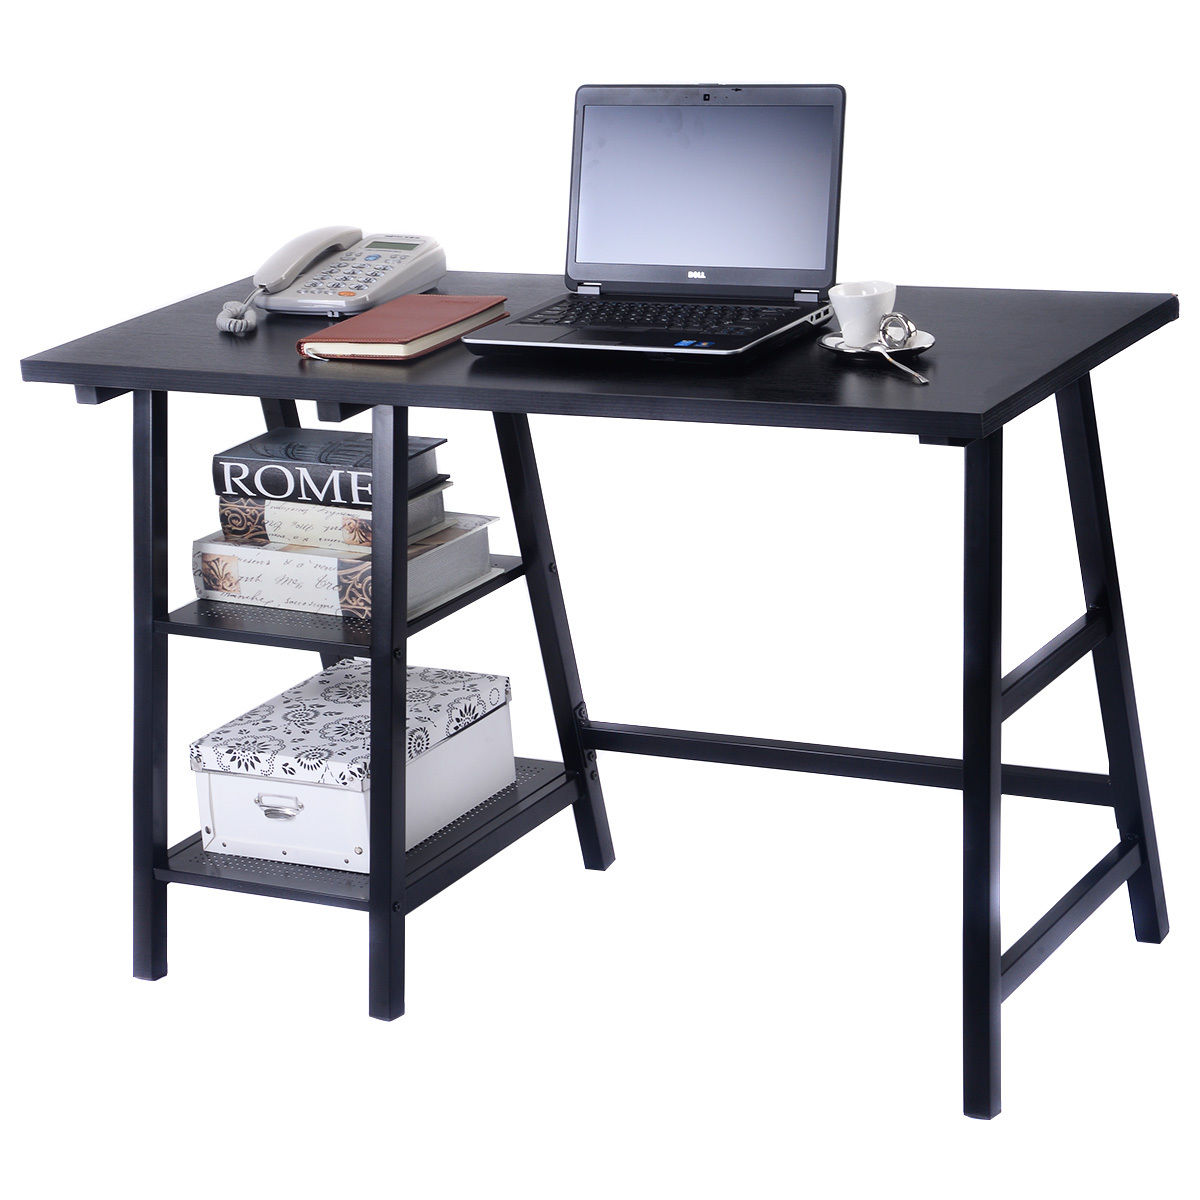 Giantex Modern Trestle Desk Wood Laptop Writing Table with Storage Shelves Home Office Furniture Computer Desk HW51778BKGiantex Modern Trestle Desk Wood Laptop Writing Table with Storage Shelves Home Office Furniture Computer Desk HW51778BK